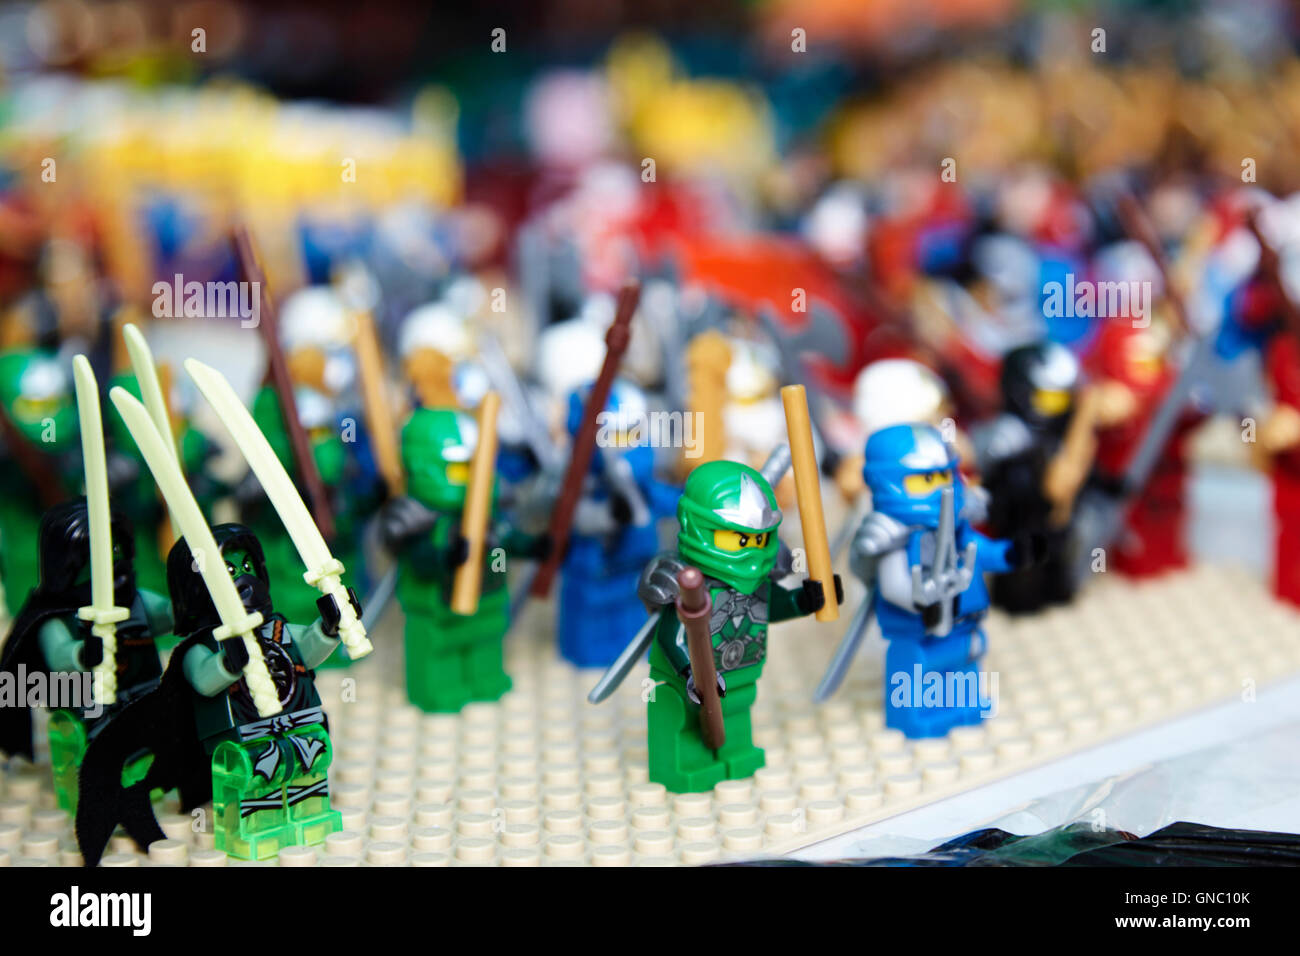 Lego For Sale Stock Photos   Lego For Sale Stock Images   Alamy rows of lego characters for sale on a stall at a collectors fair   Stock  Image